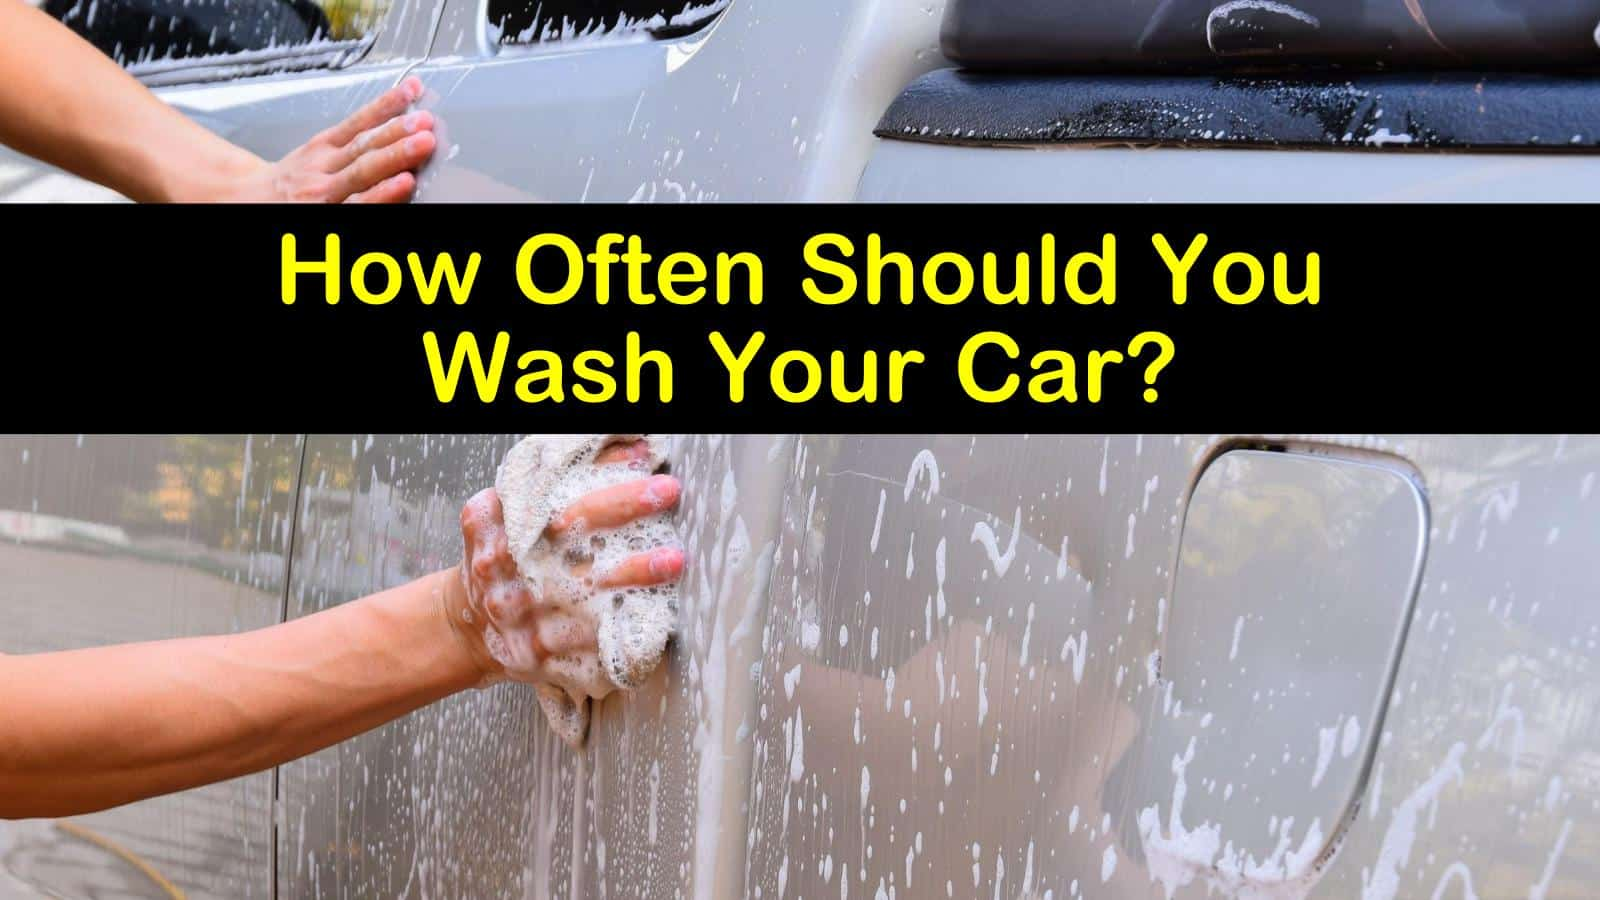 how often should you wash your car titleimg1